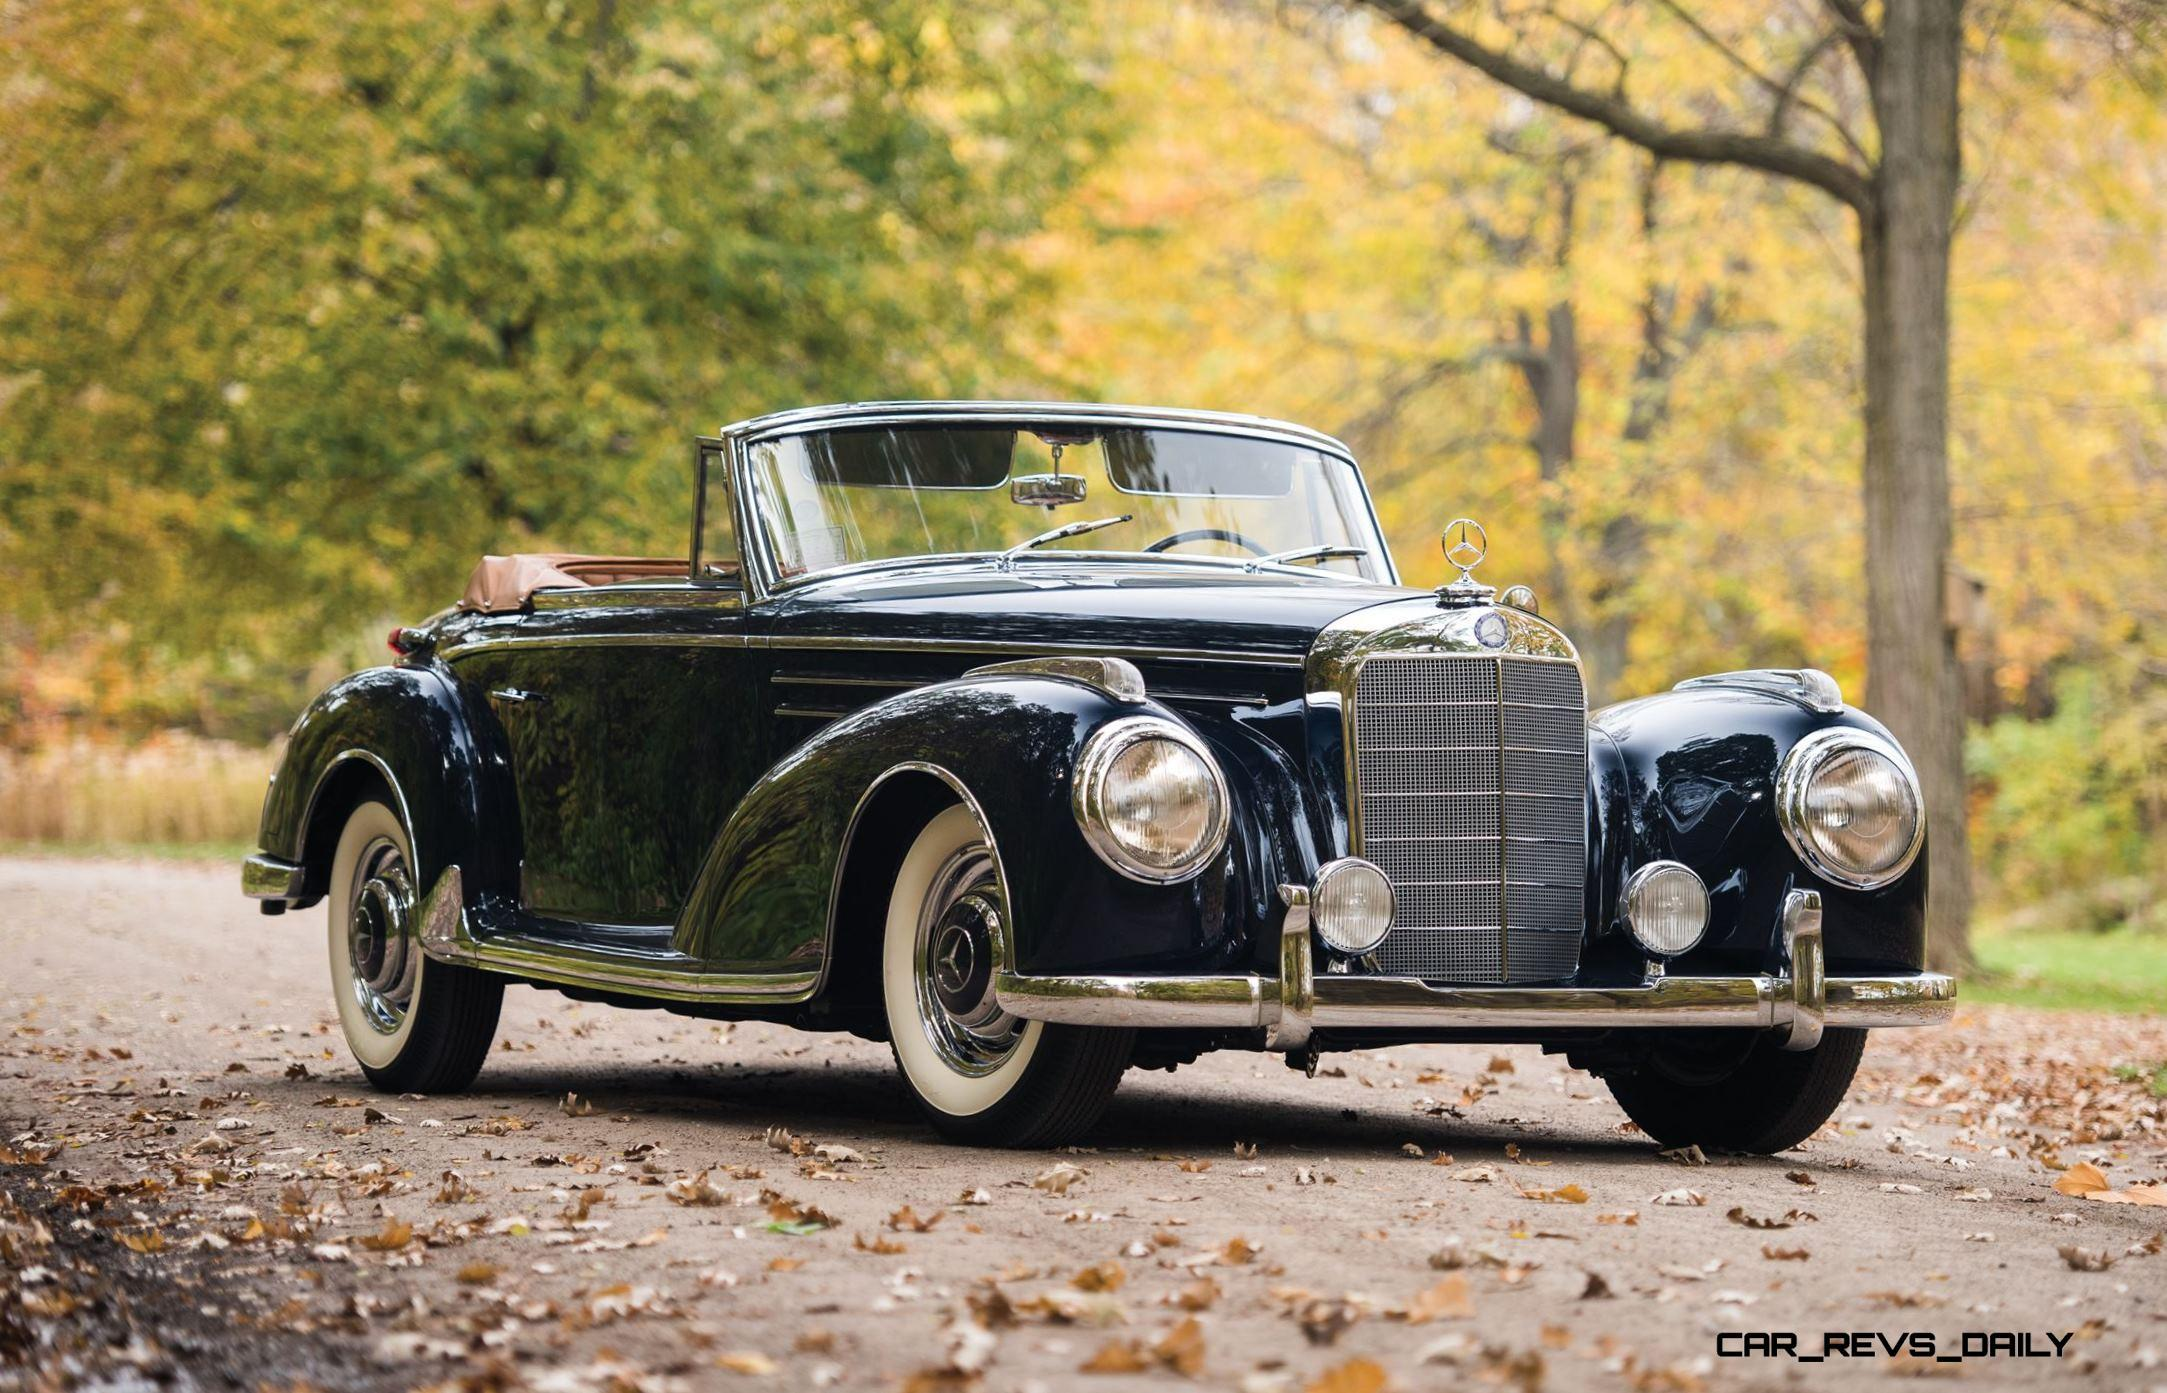 1955 56 mercedes benz 300sc and 300s roadster set to stun for Mercedes benz 300s